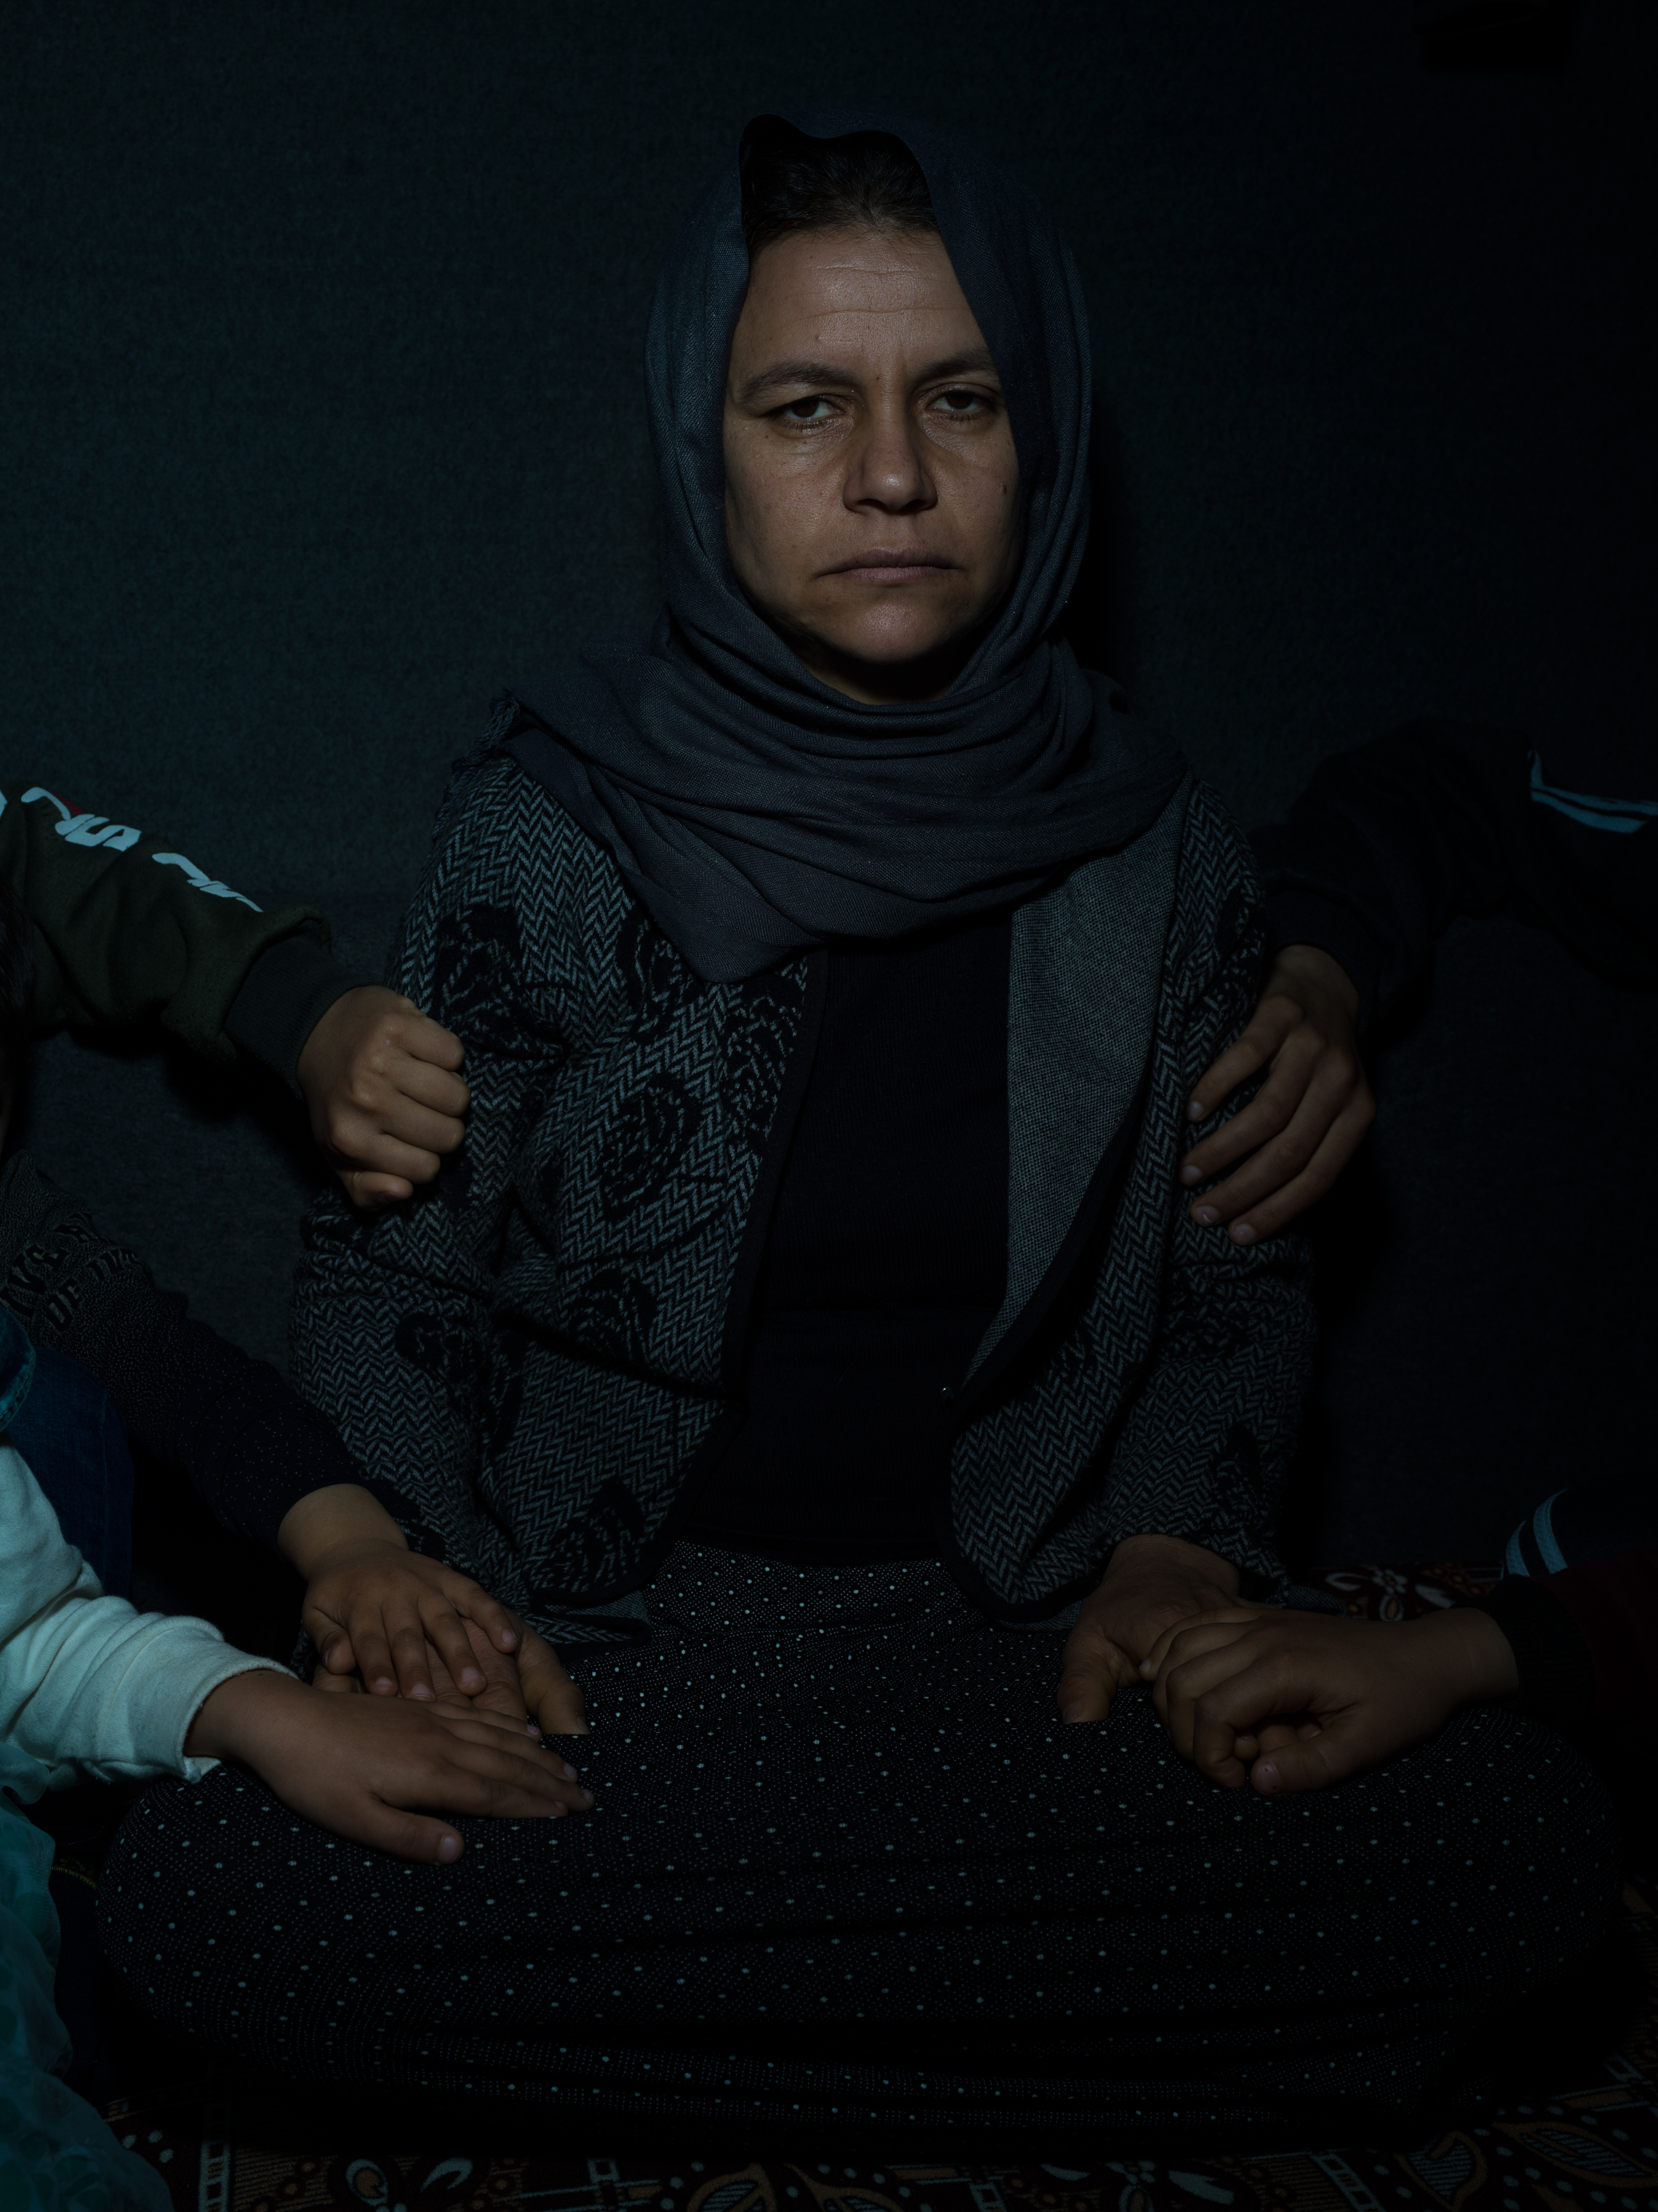 Subha, 35, and the hands of her children: Fahad, 15; Fahdi, 13; Linda, 10; Liza, 7; and Salam, 5. Photographed in February, they were captured by ISIS in 2014 and held as slaves until recently escaping the battle in Baghouz. Fahad, who had been trained as a fighter, led the way to safety.